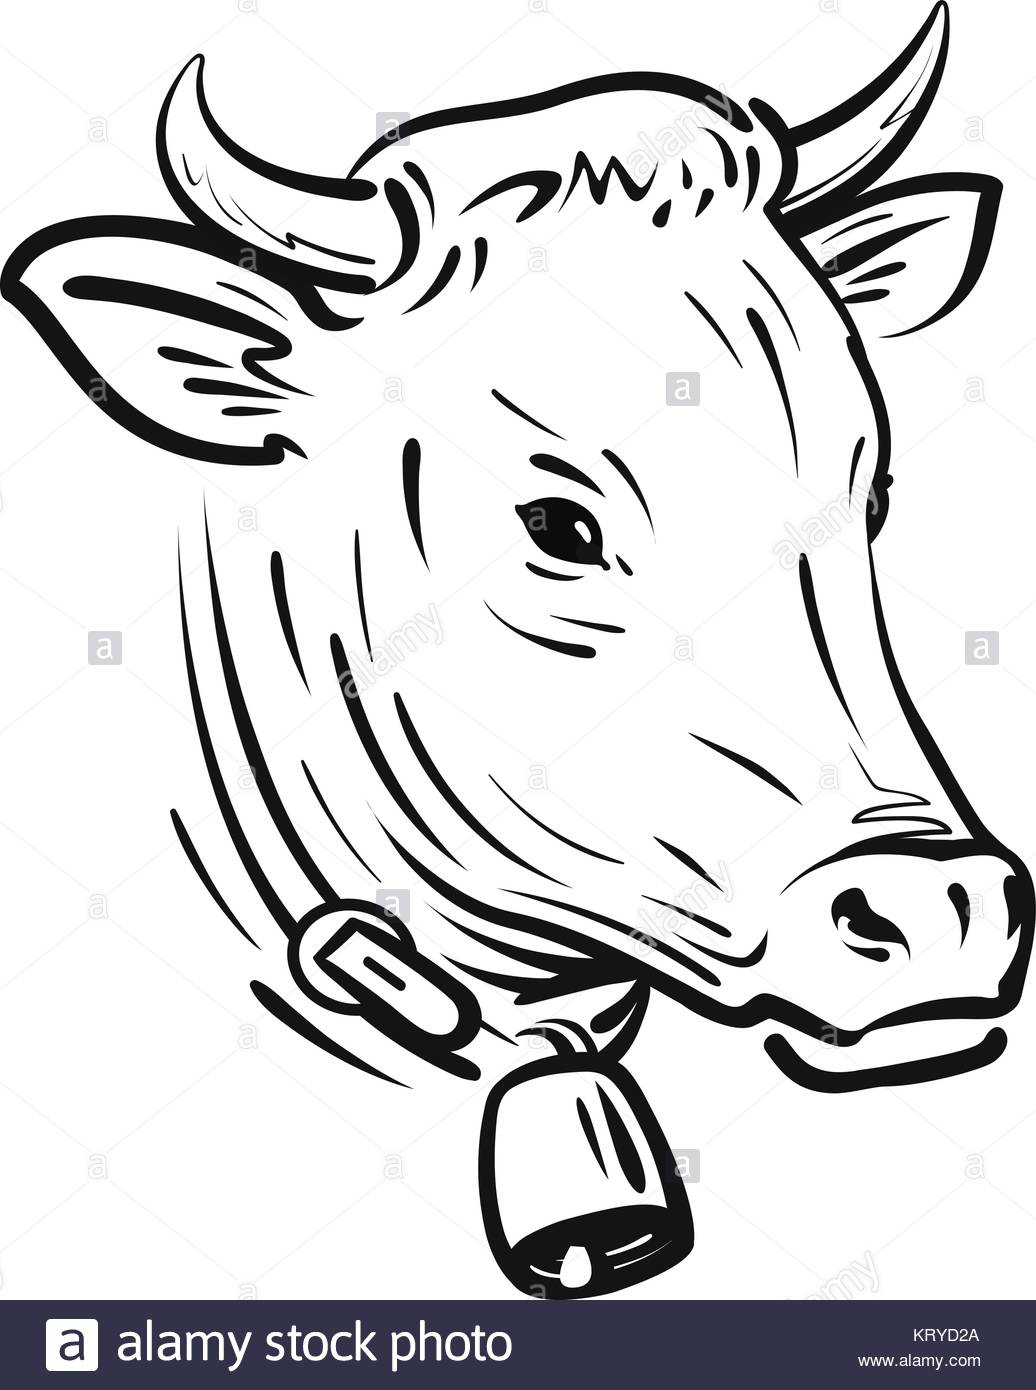 1036x1390 Sketch Of Cattle Stock Photos Amp Sketch Of Cattle Stock Images